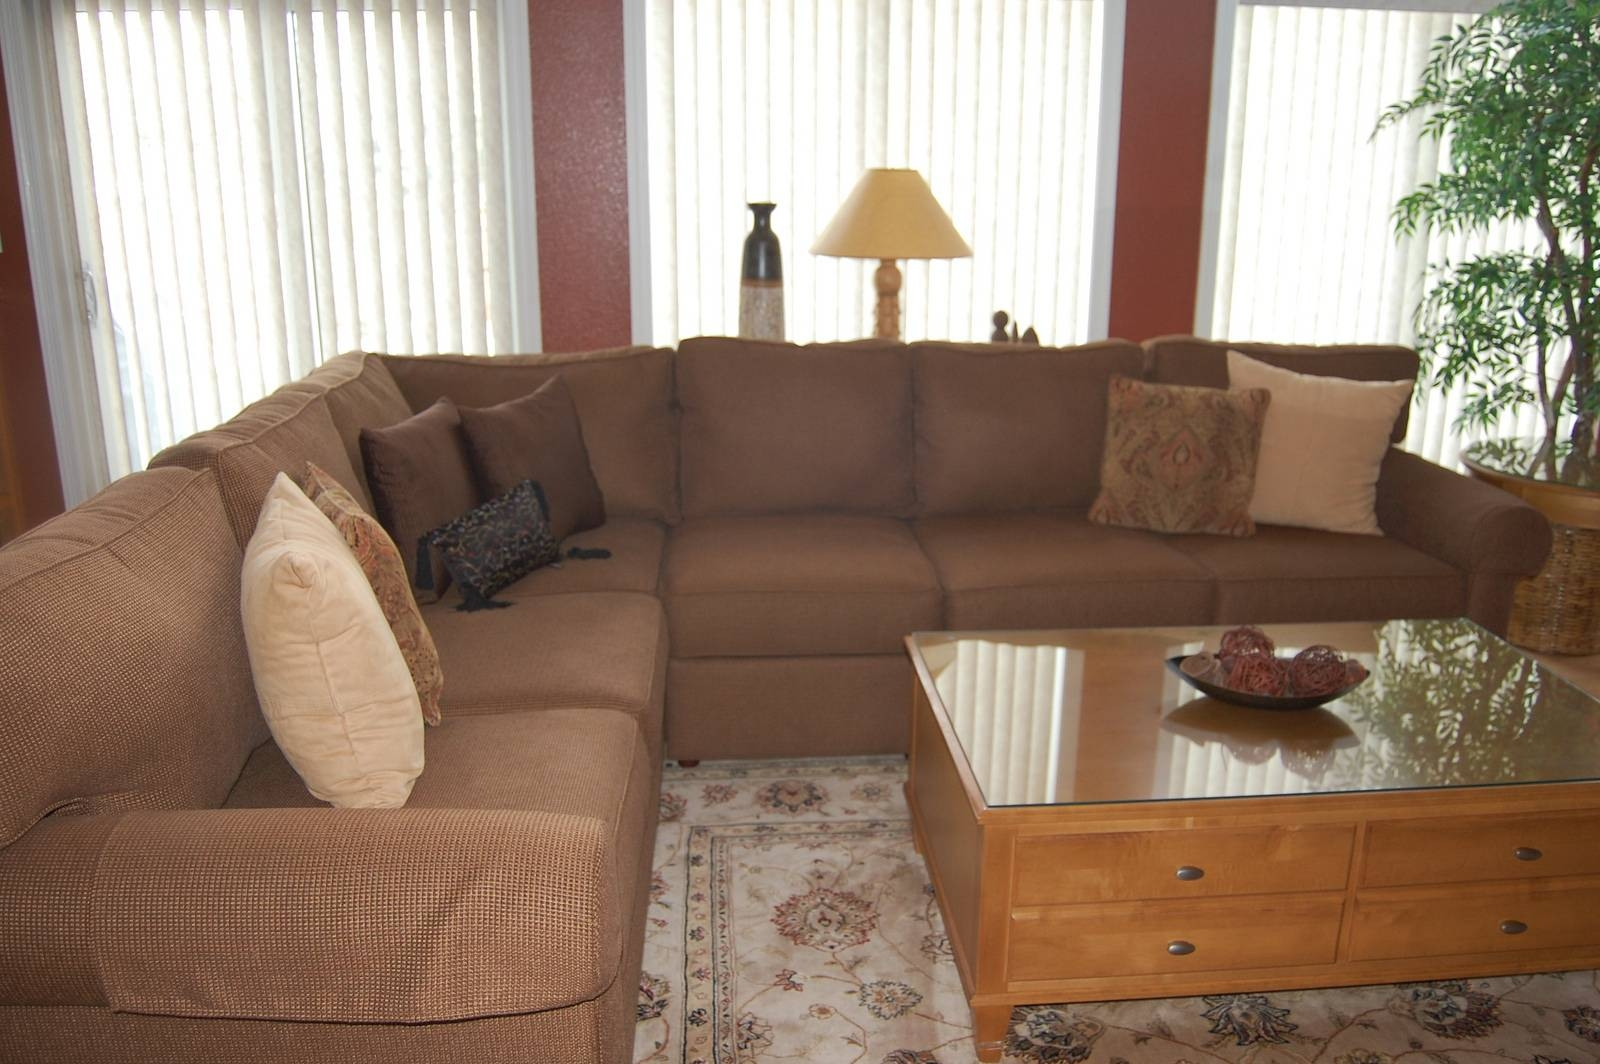 Furniture: Comfortable Ethan Allen Sectional Sofas For Your Living For Ethan Allen Sectional Sofas (View 14 of 15)